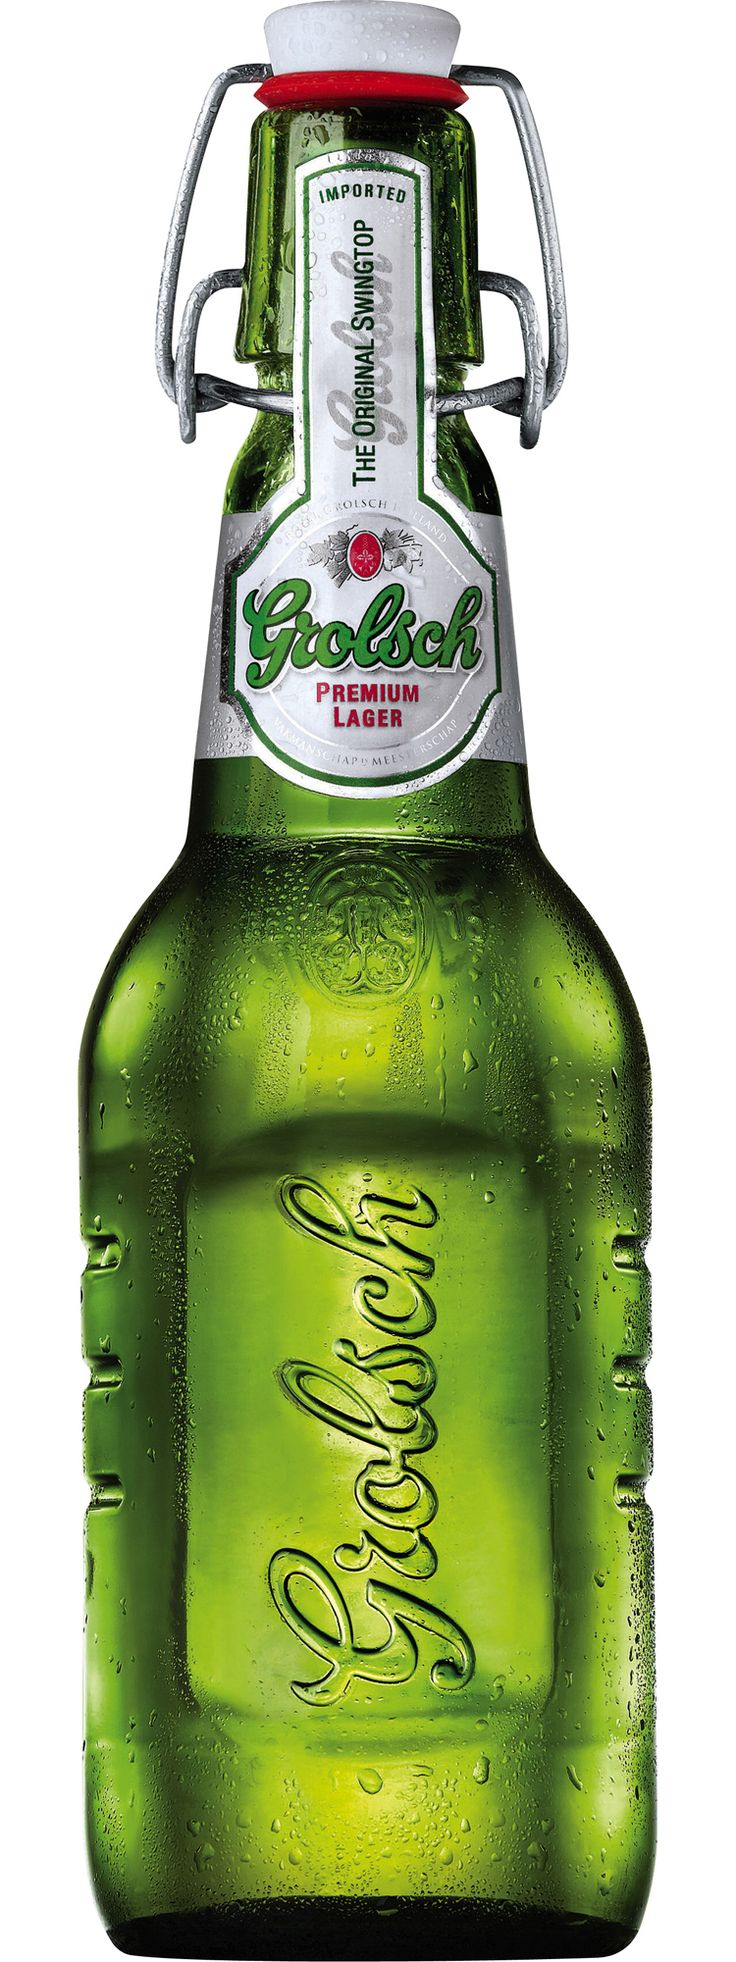 grolsch beer | Grolsch Premium Lager Swing Top 450mL